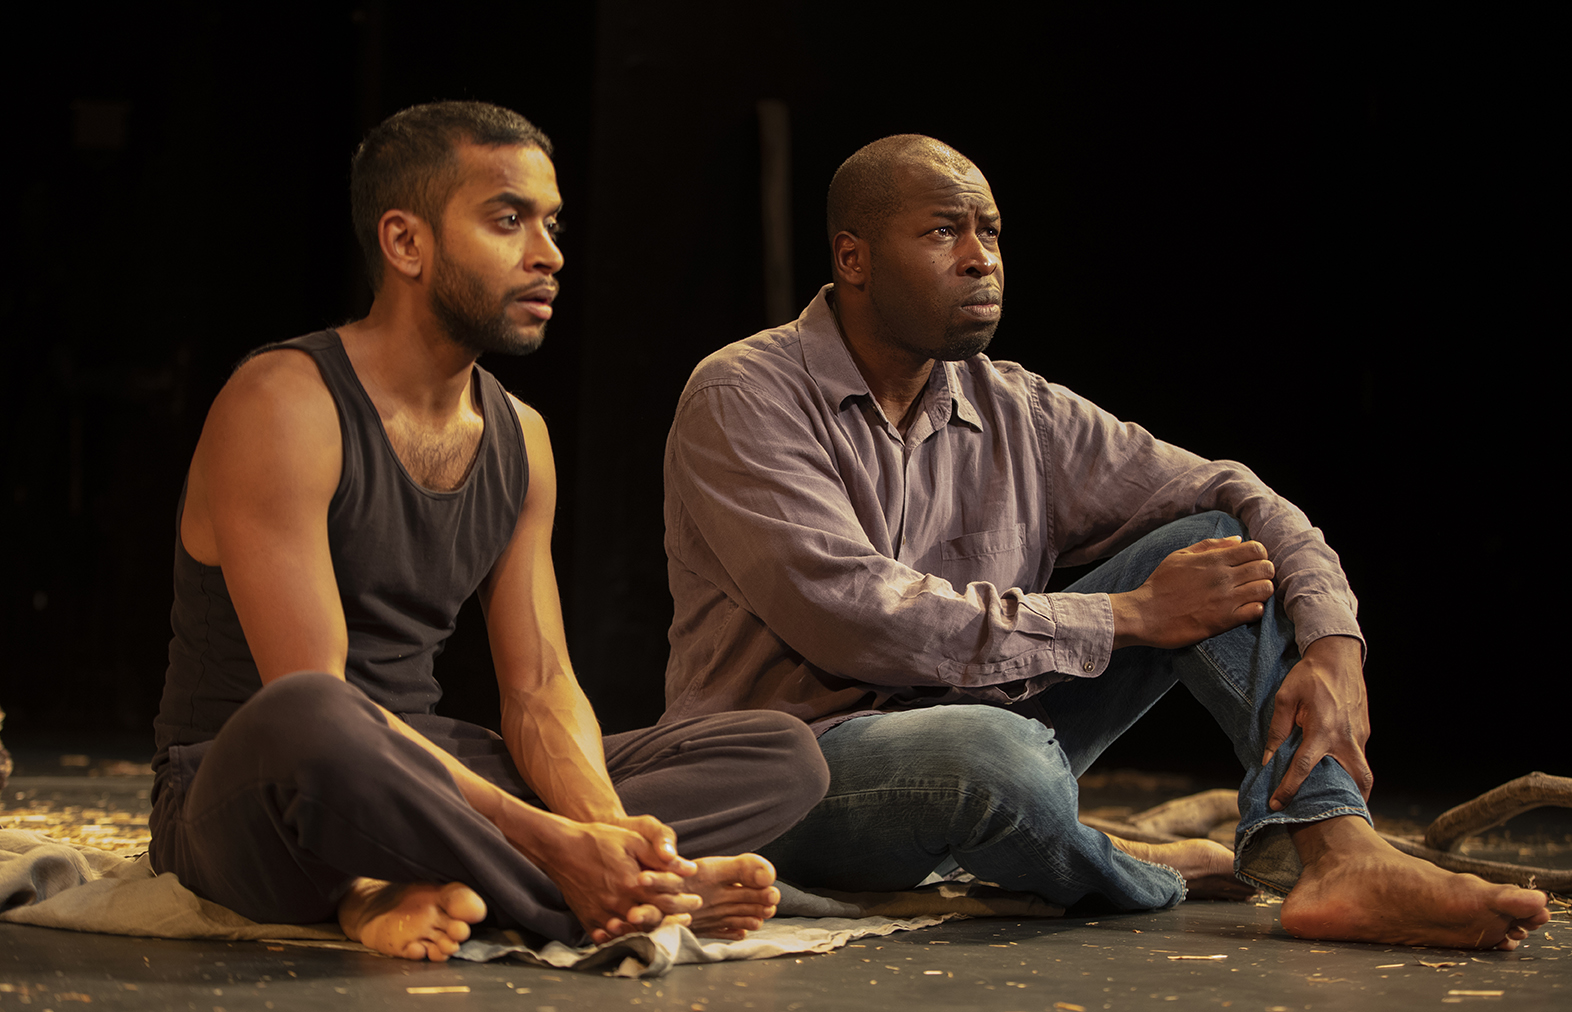 DECEMBER  Hiran Abeysekera as Mavuso & Hervé Goffings as Ezekiel in Peter Brook's   The Prisoner   at  the Theatre for a New Audience  in New York. Photographer: Joan Marcus.